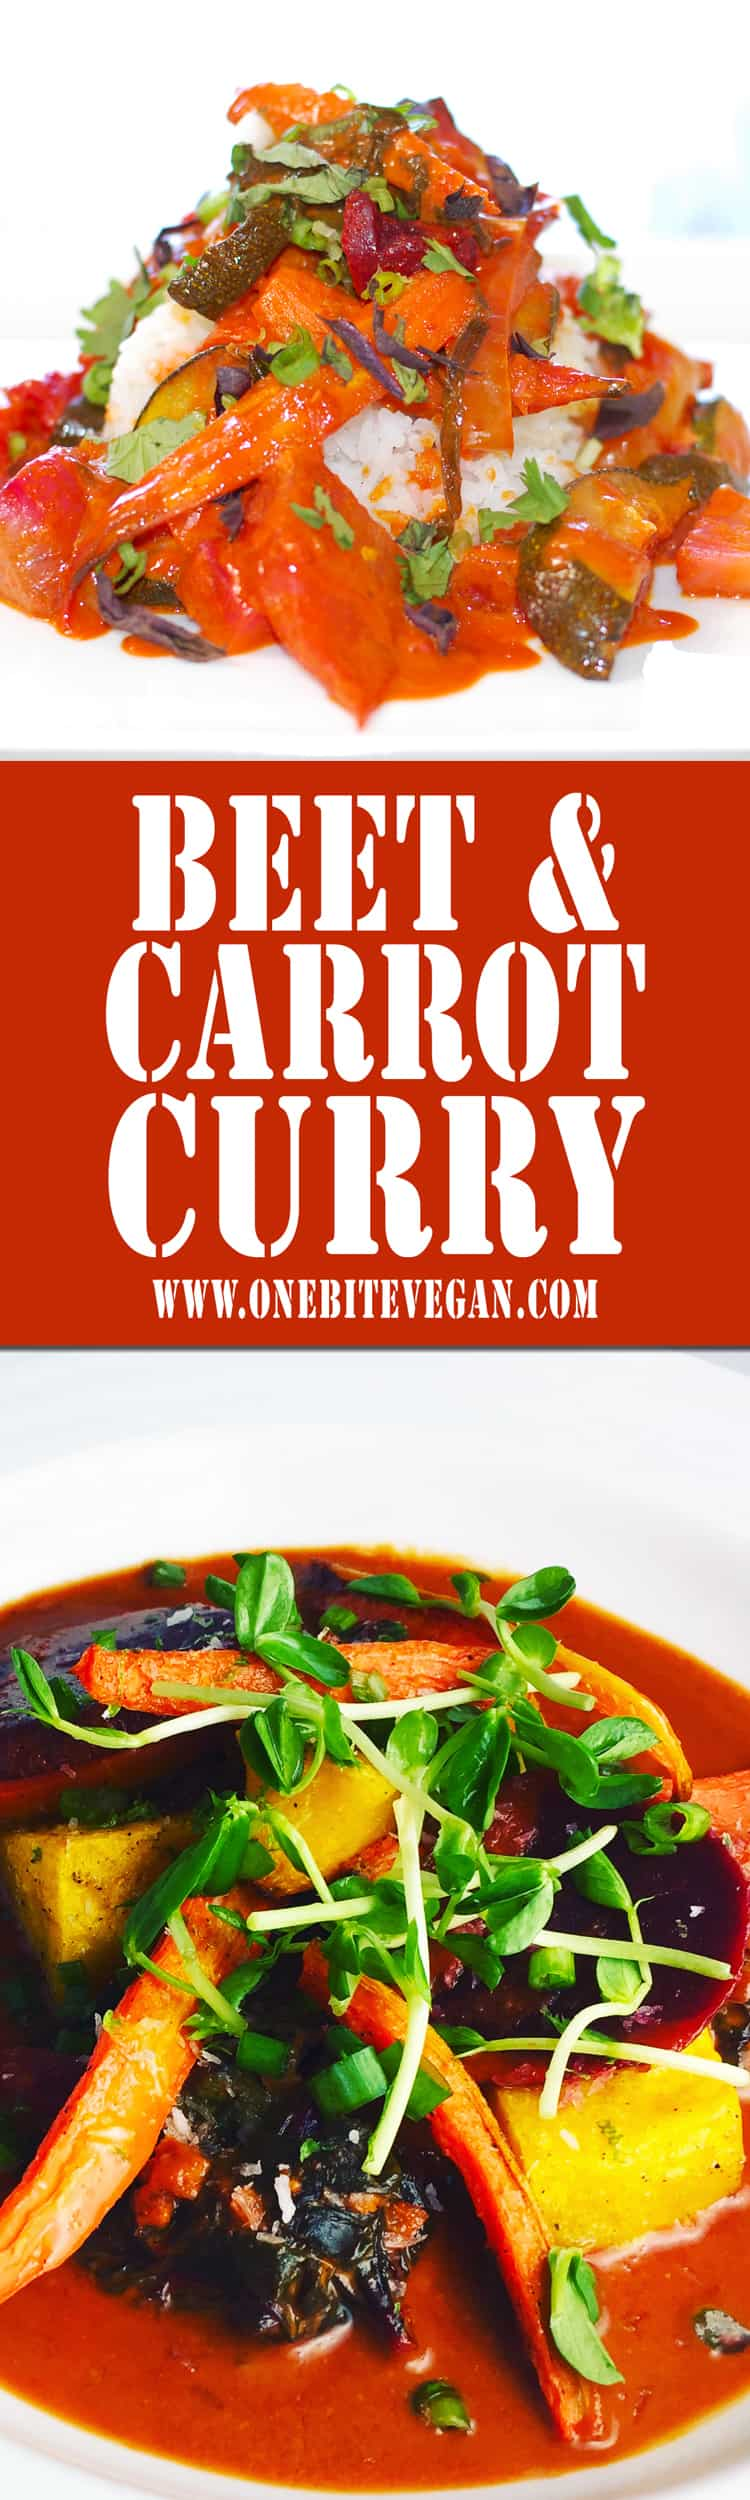 This vegan beet and carrot Thai style curry is as delicious as it looks. Bold flavors with fresh vegetables and coconut milk. Serve over rice or rice noodles.